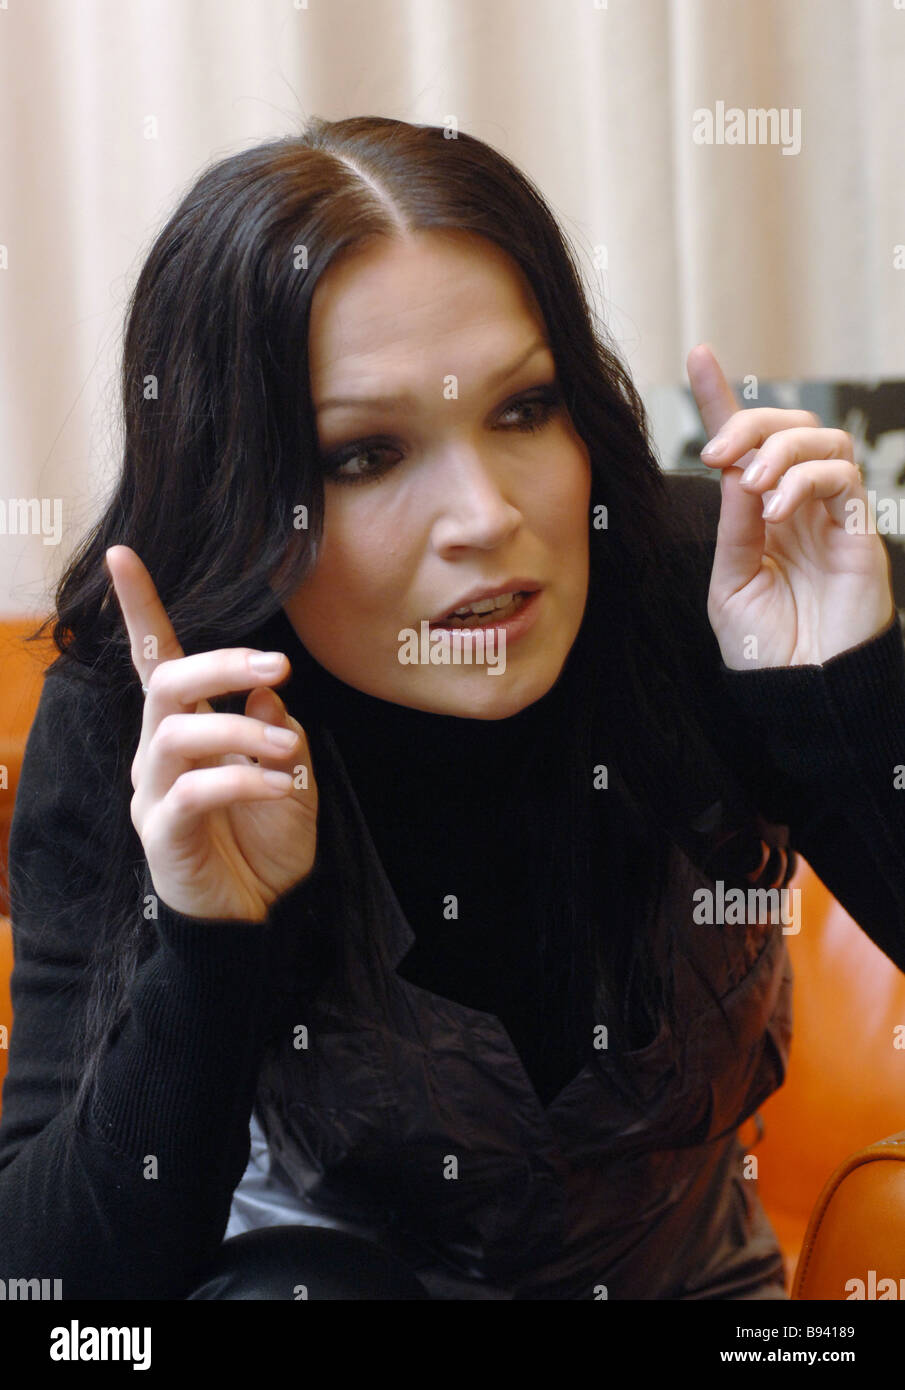 well known finnish pop singer tarja turunen during an interview in stock photo well known finnish pop singer tarja turunen during an interview in moscow where she has come for the presentation of her first